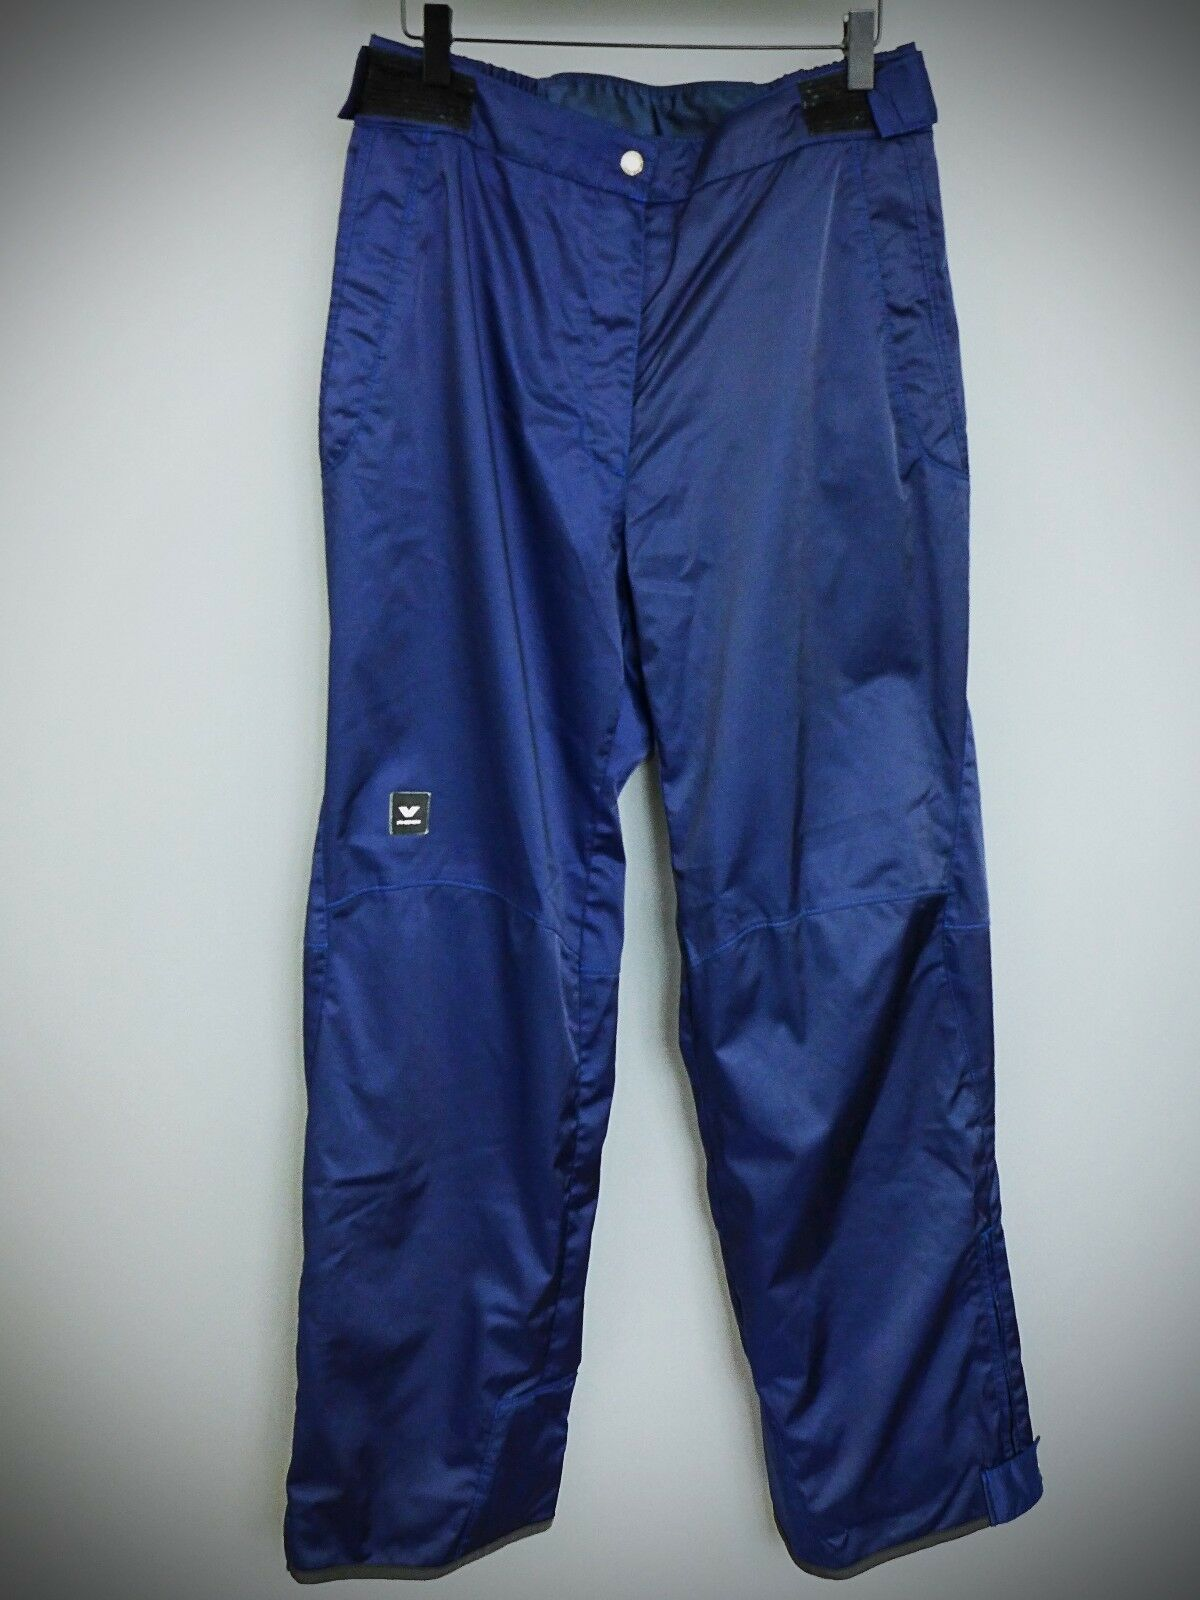 XII209 Women Phenix Skiing Snowboarding Trousers XL W32 L31